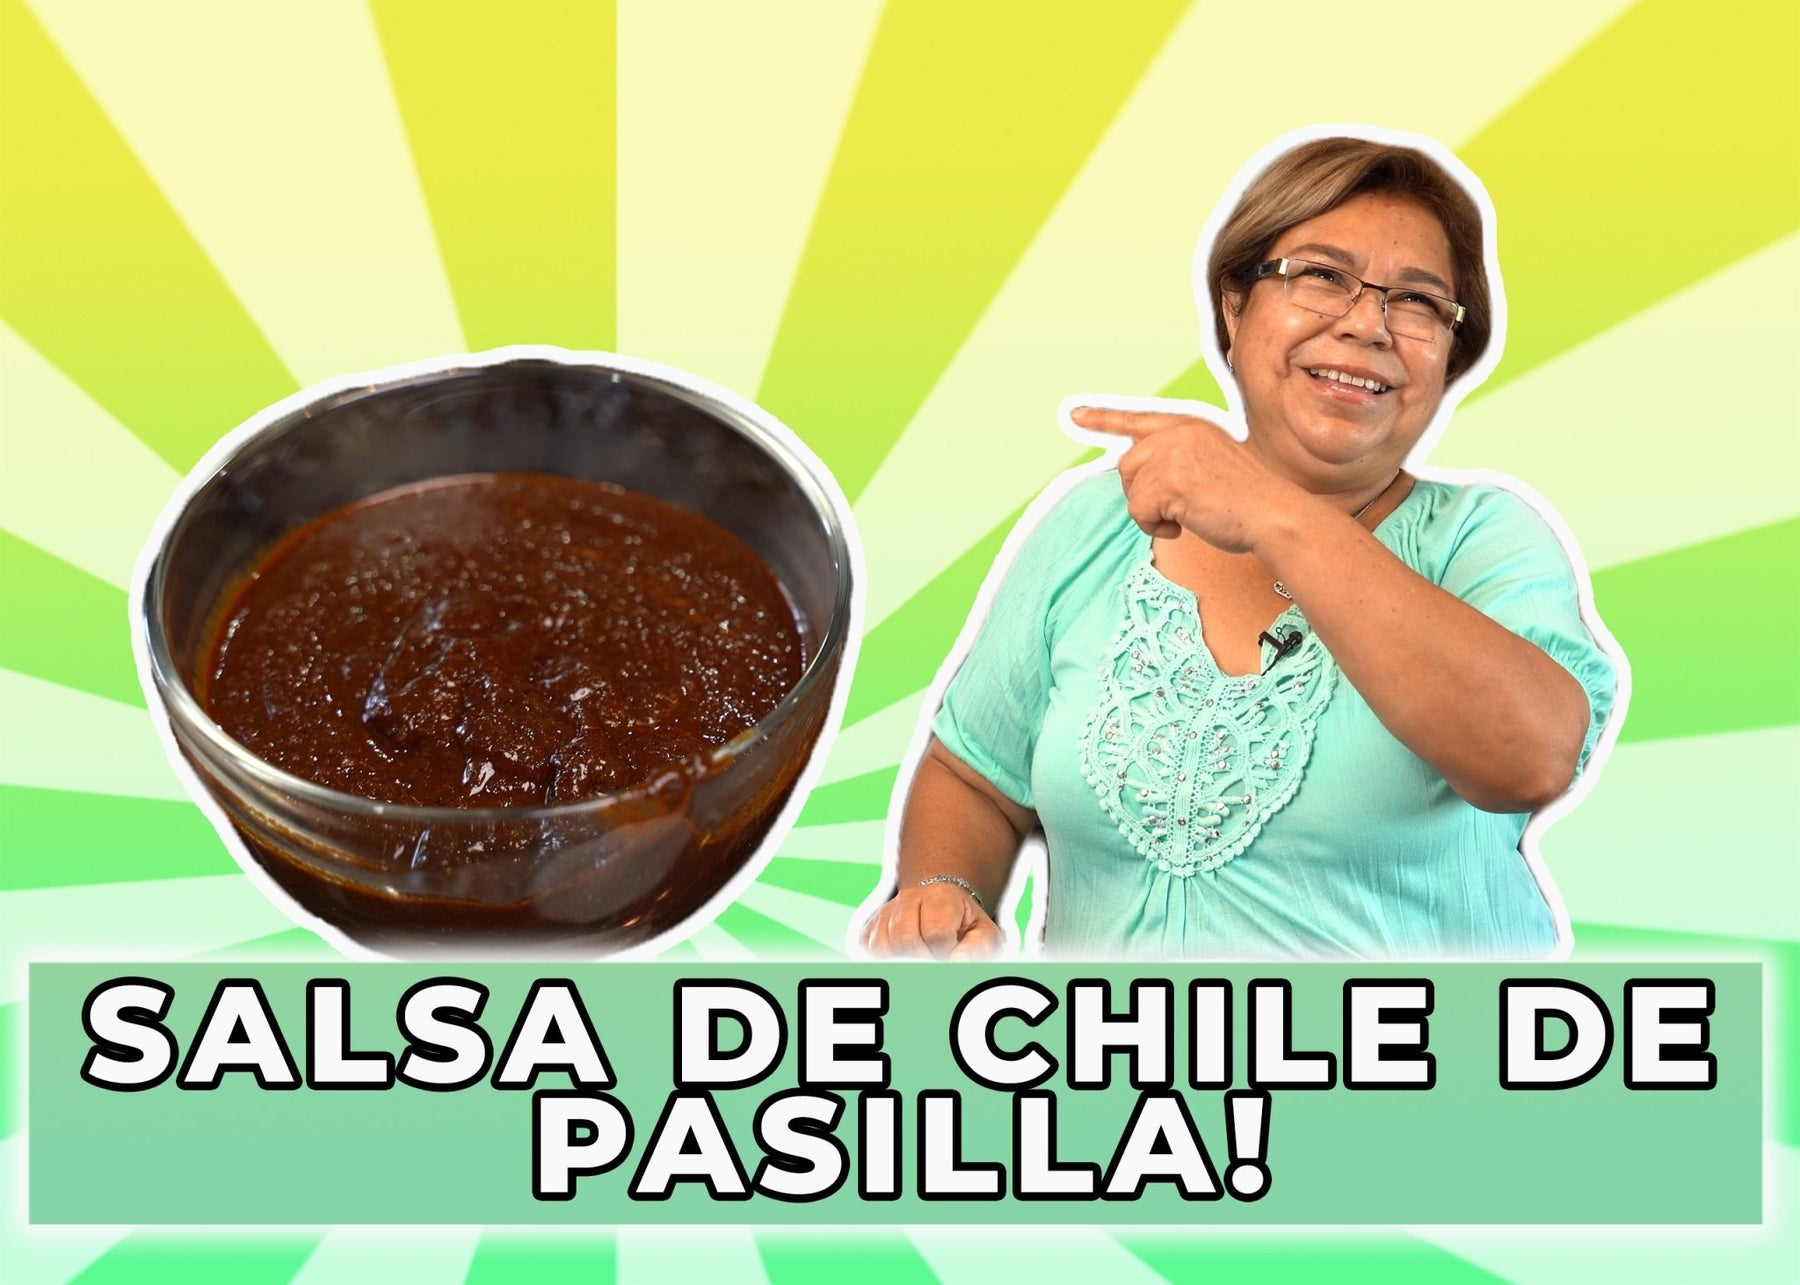 How To Make Salsa Using Dried Chile Pasilla Peppers Recipe | Ole Rico